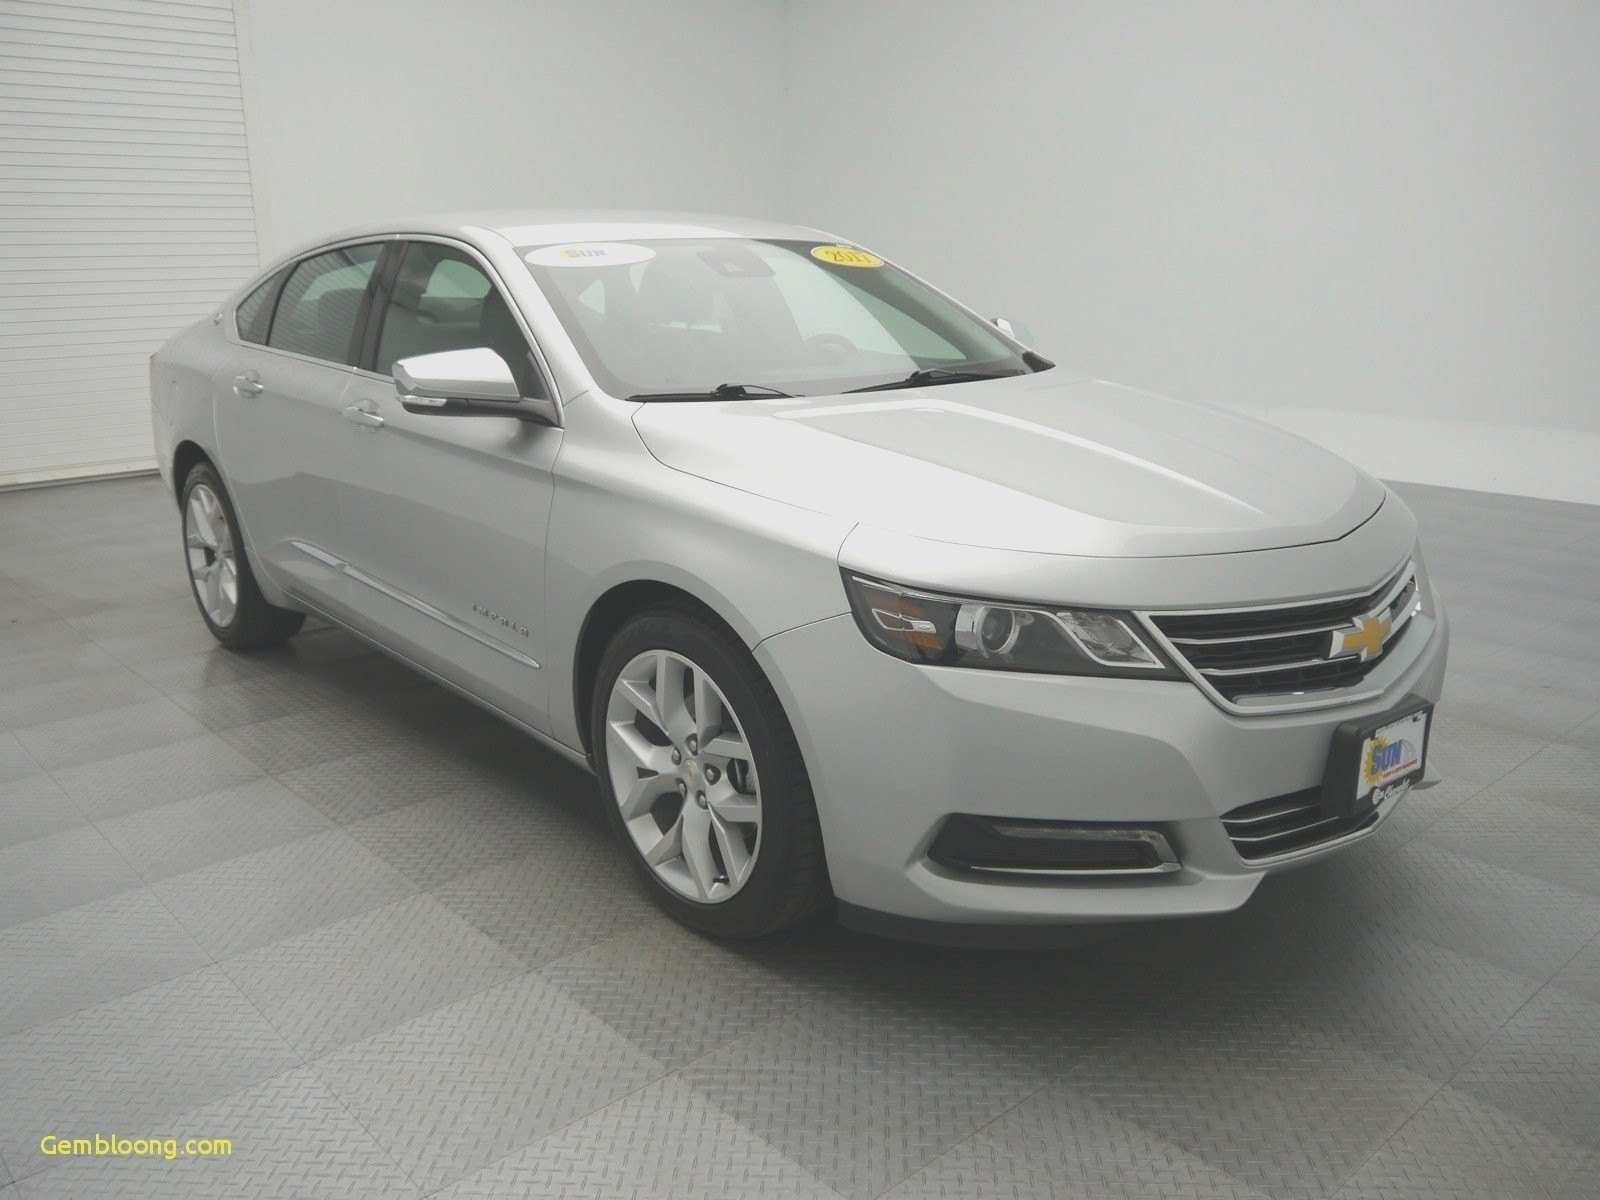 12 All New 2019 Chevy Impala Ss Ltz Coupe Price Design And Review